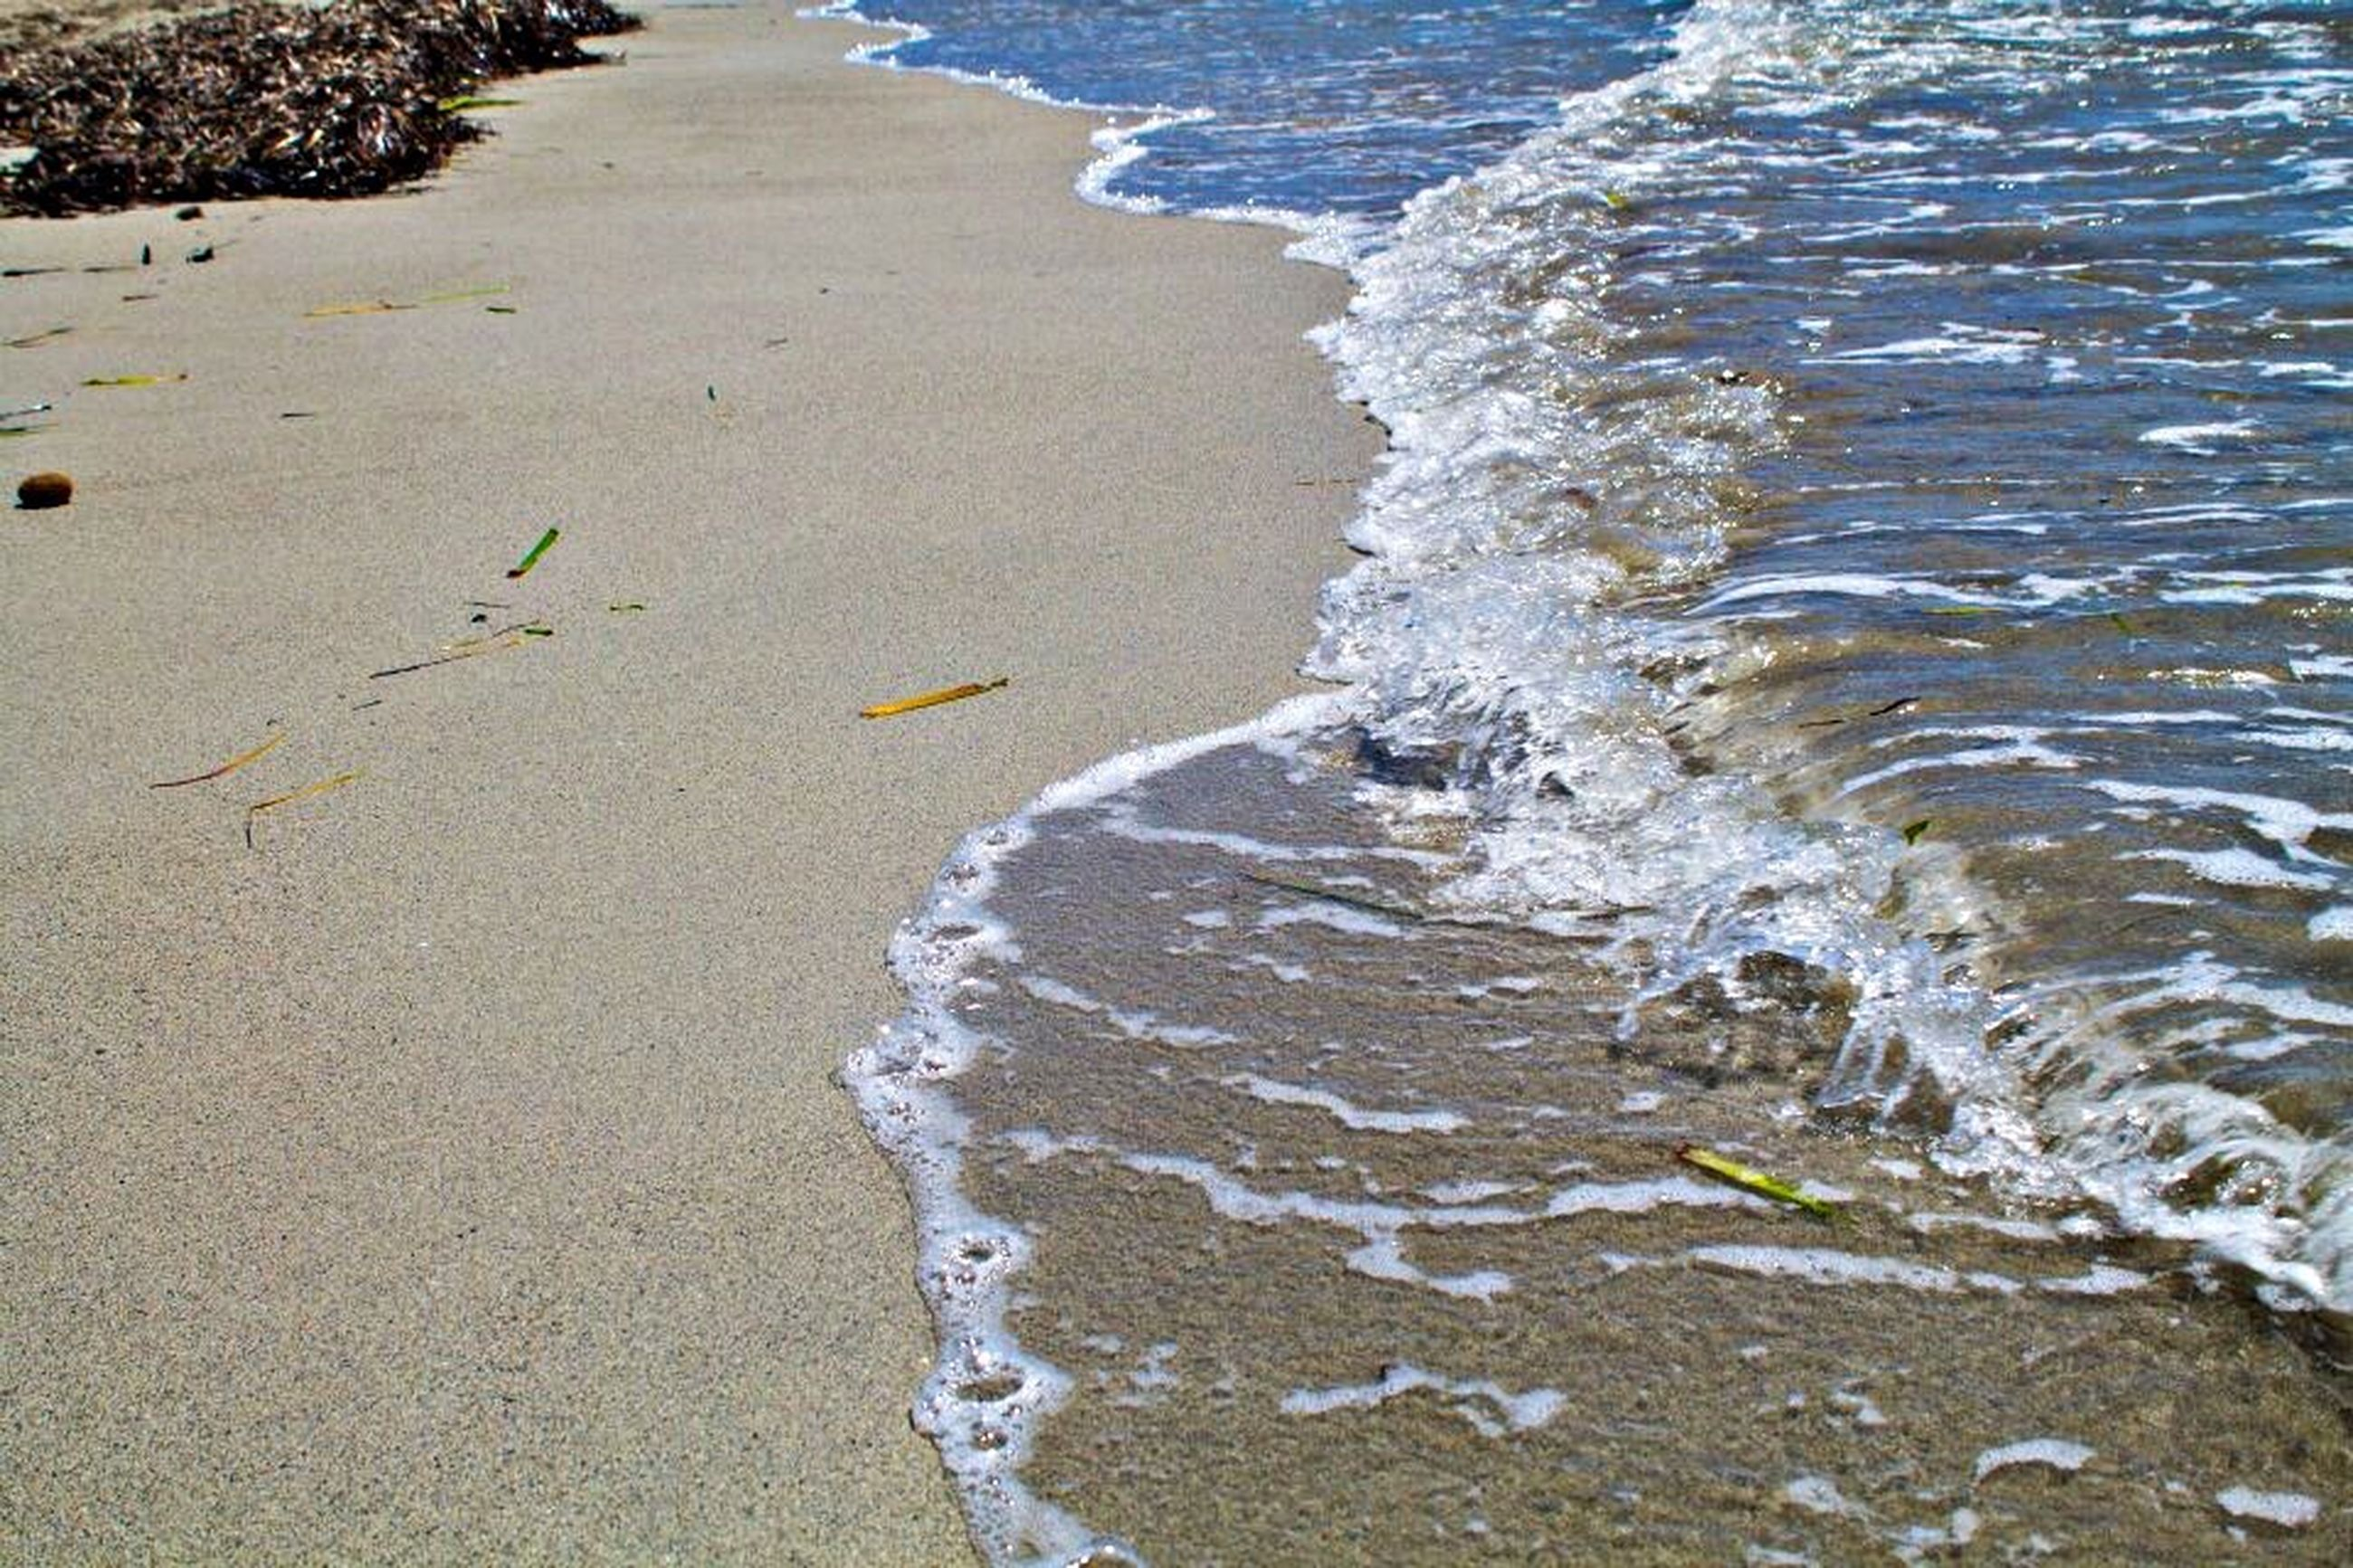 water, surf, beach, shore, sea, wave, sand, high angle view, wet, motion, nature, splashing, beauty in nature, tranquility, day, outdoors, no people, sunlight, footprint, coastline